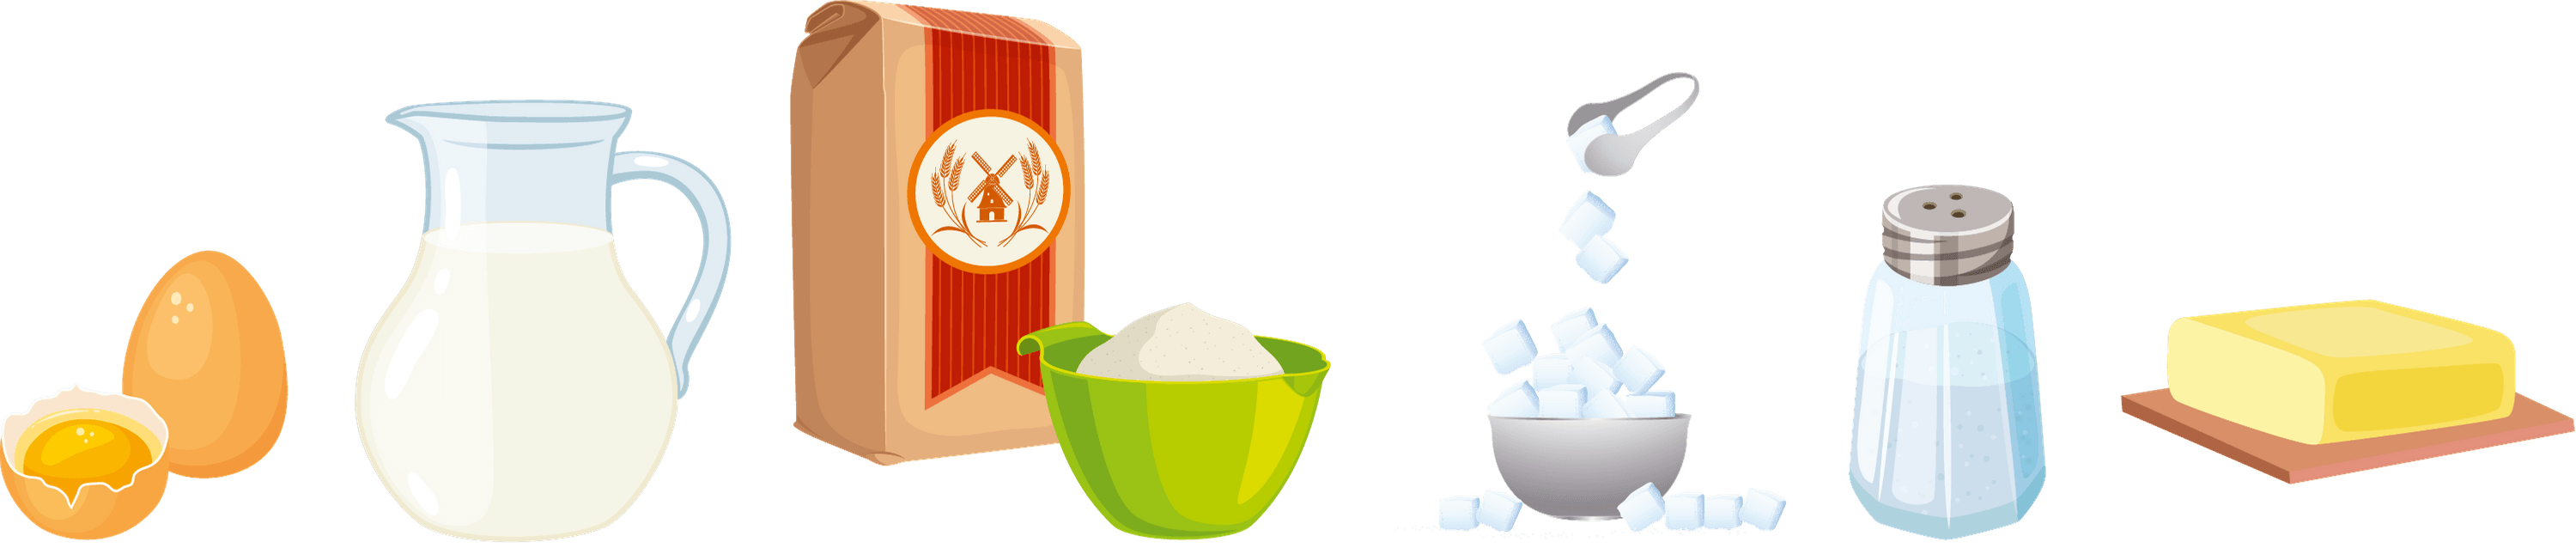 ang5-wb-fillers-recettecomplet